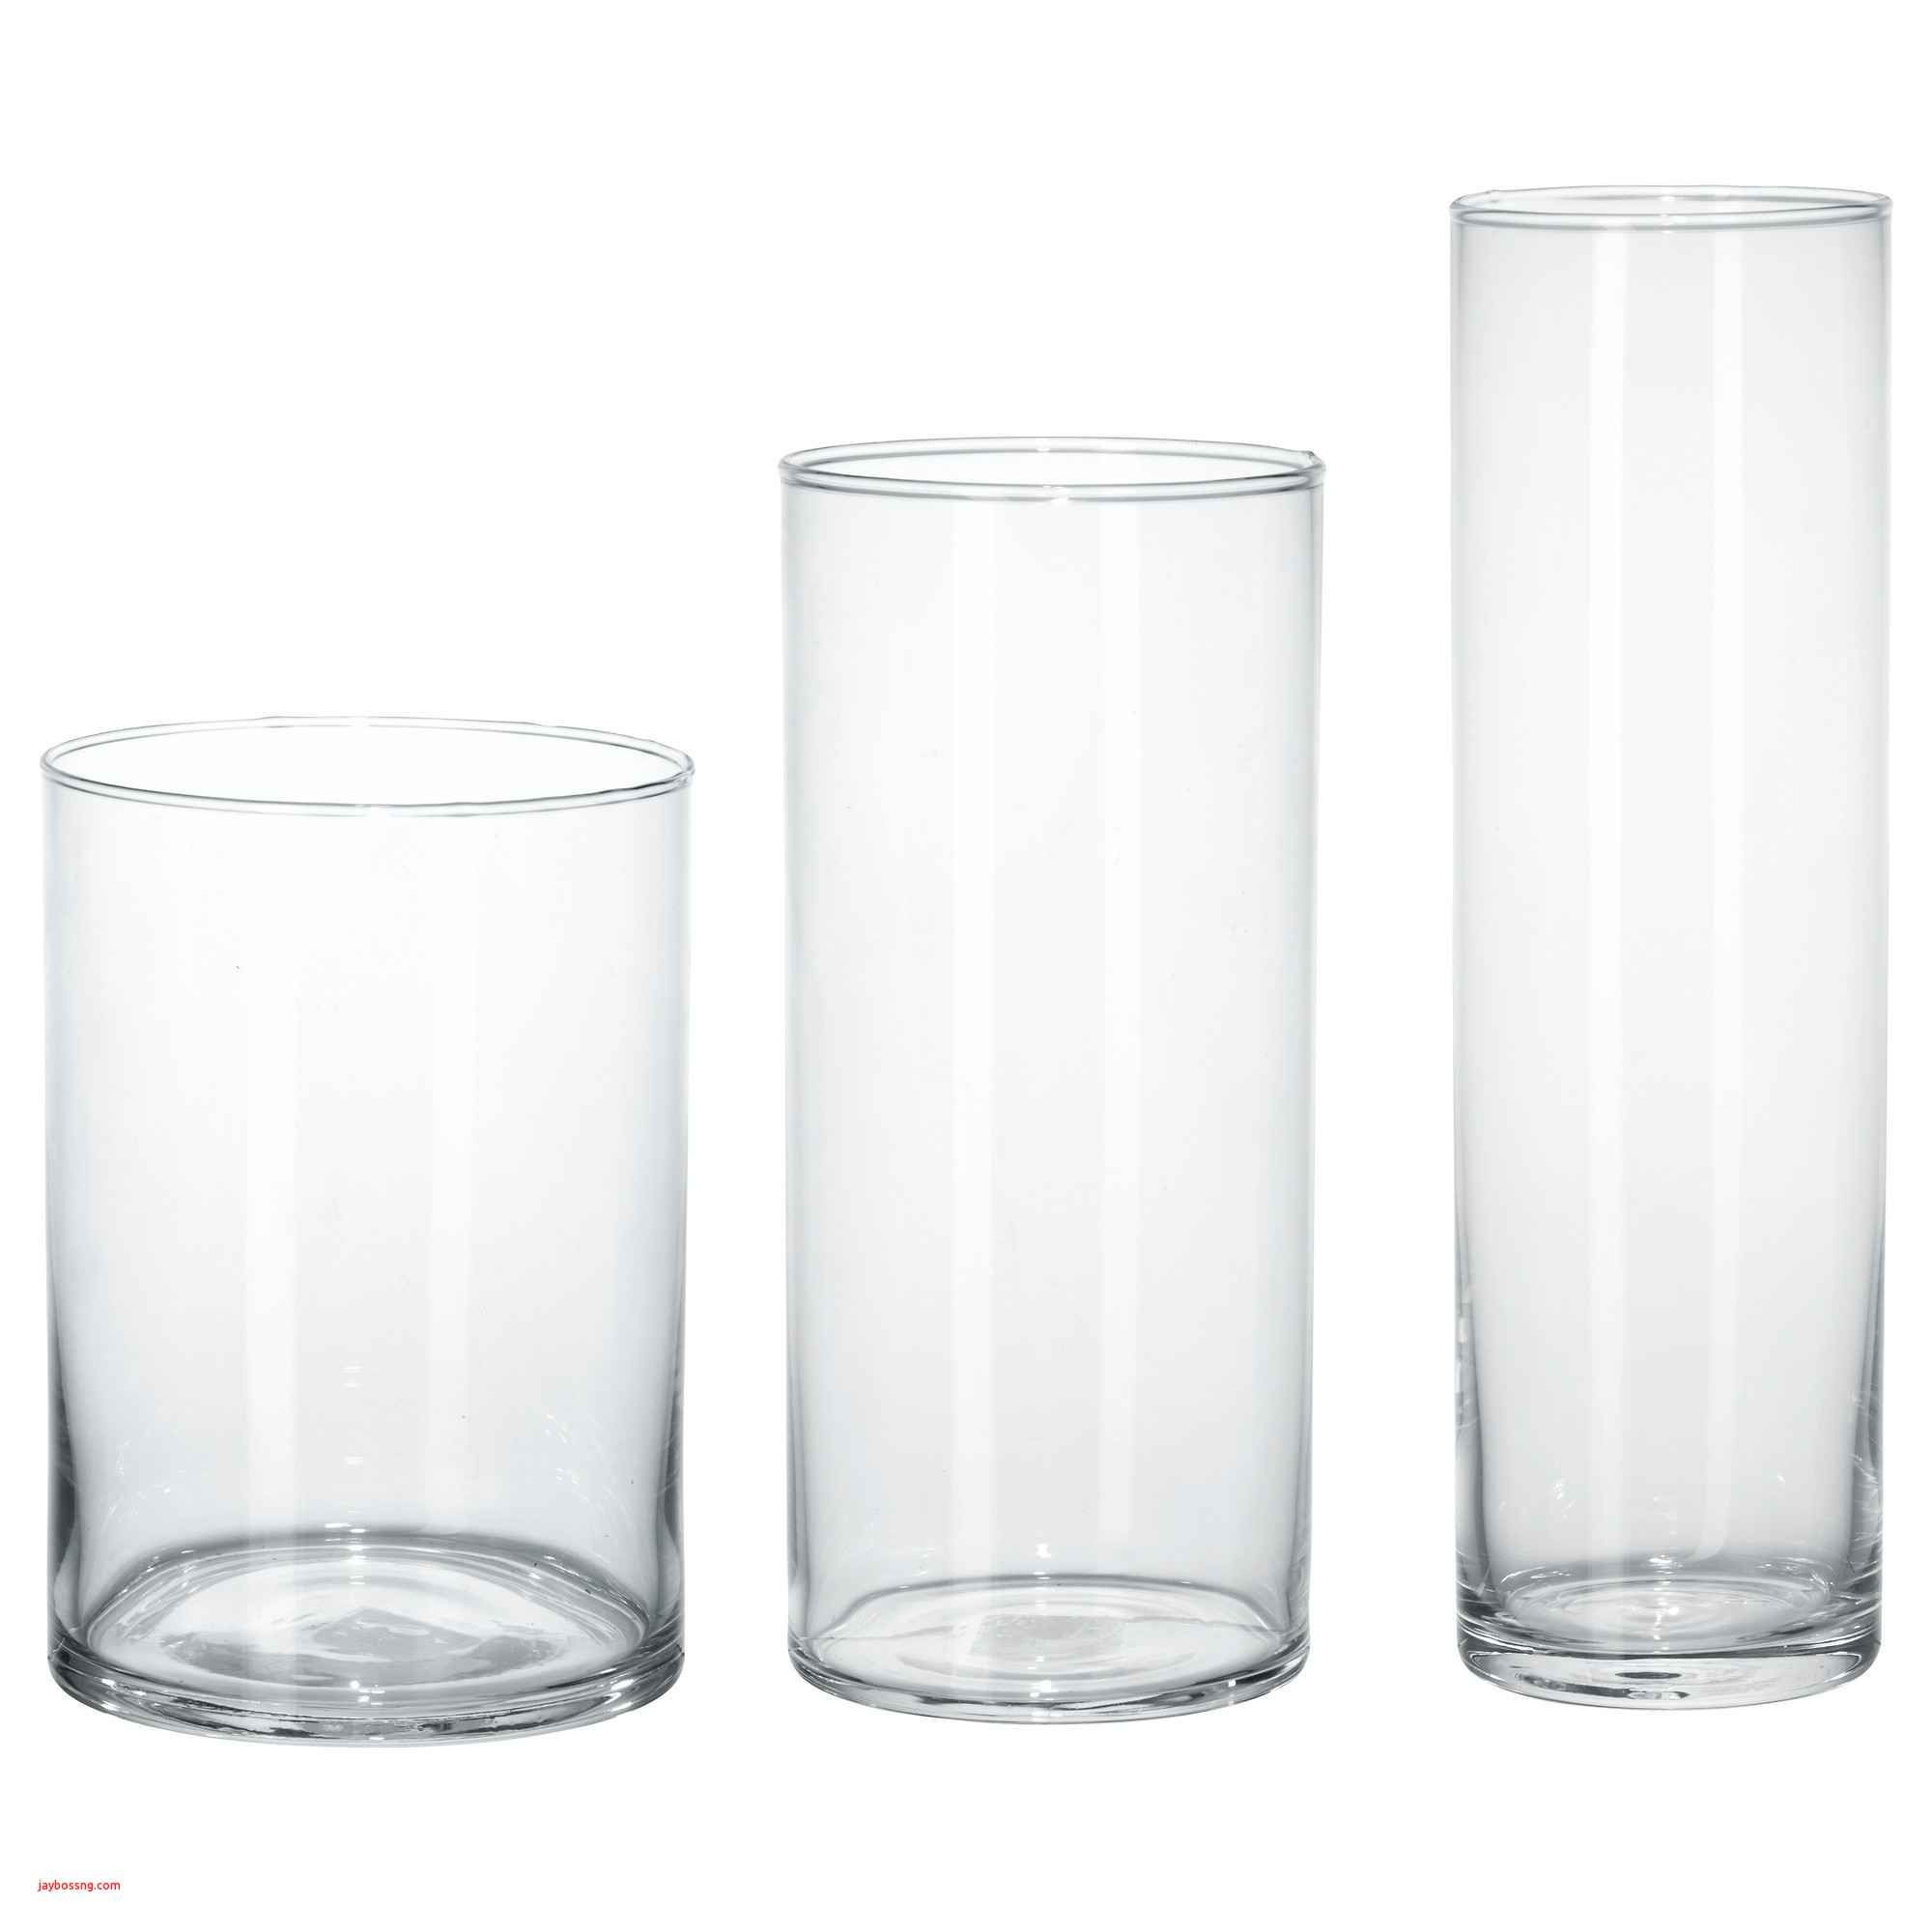 22 Ideal wholesale Pottery Vases 2021 free download wholesale pottery vases of white glass vase elegant ikea white table created pe s5h vases ikea inside white glass vase elegant ikea white table created pe s5h vases ikea vase i 0d bladet